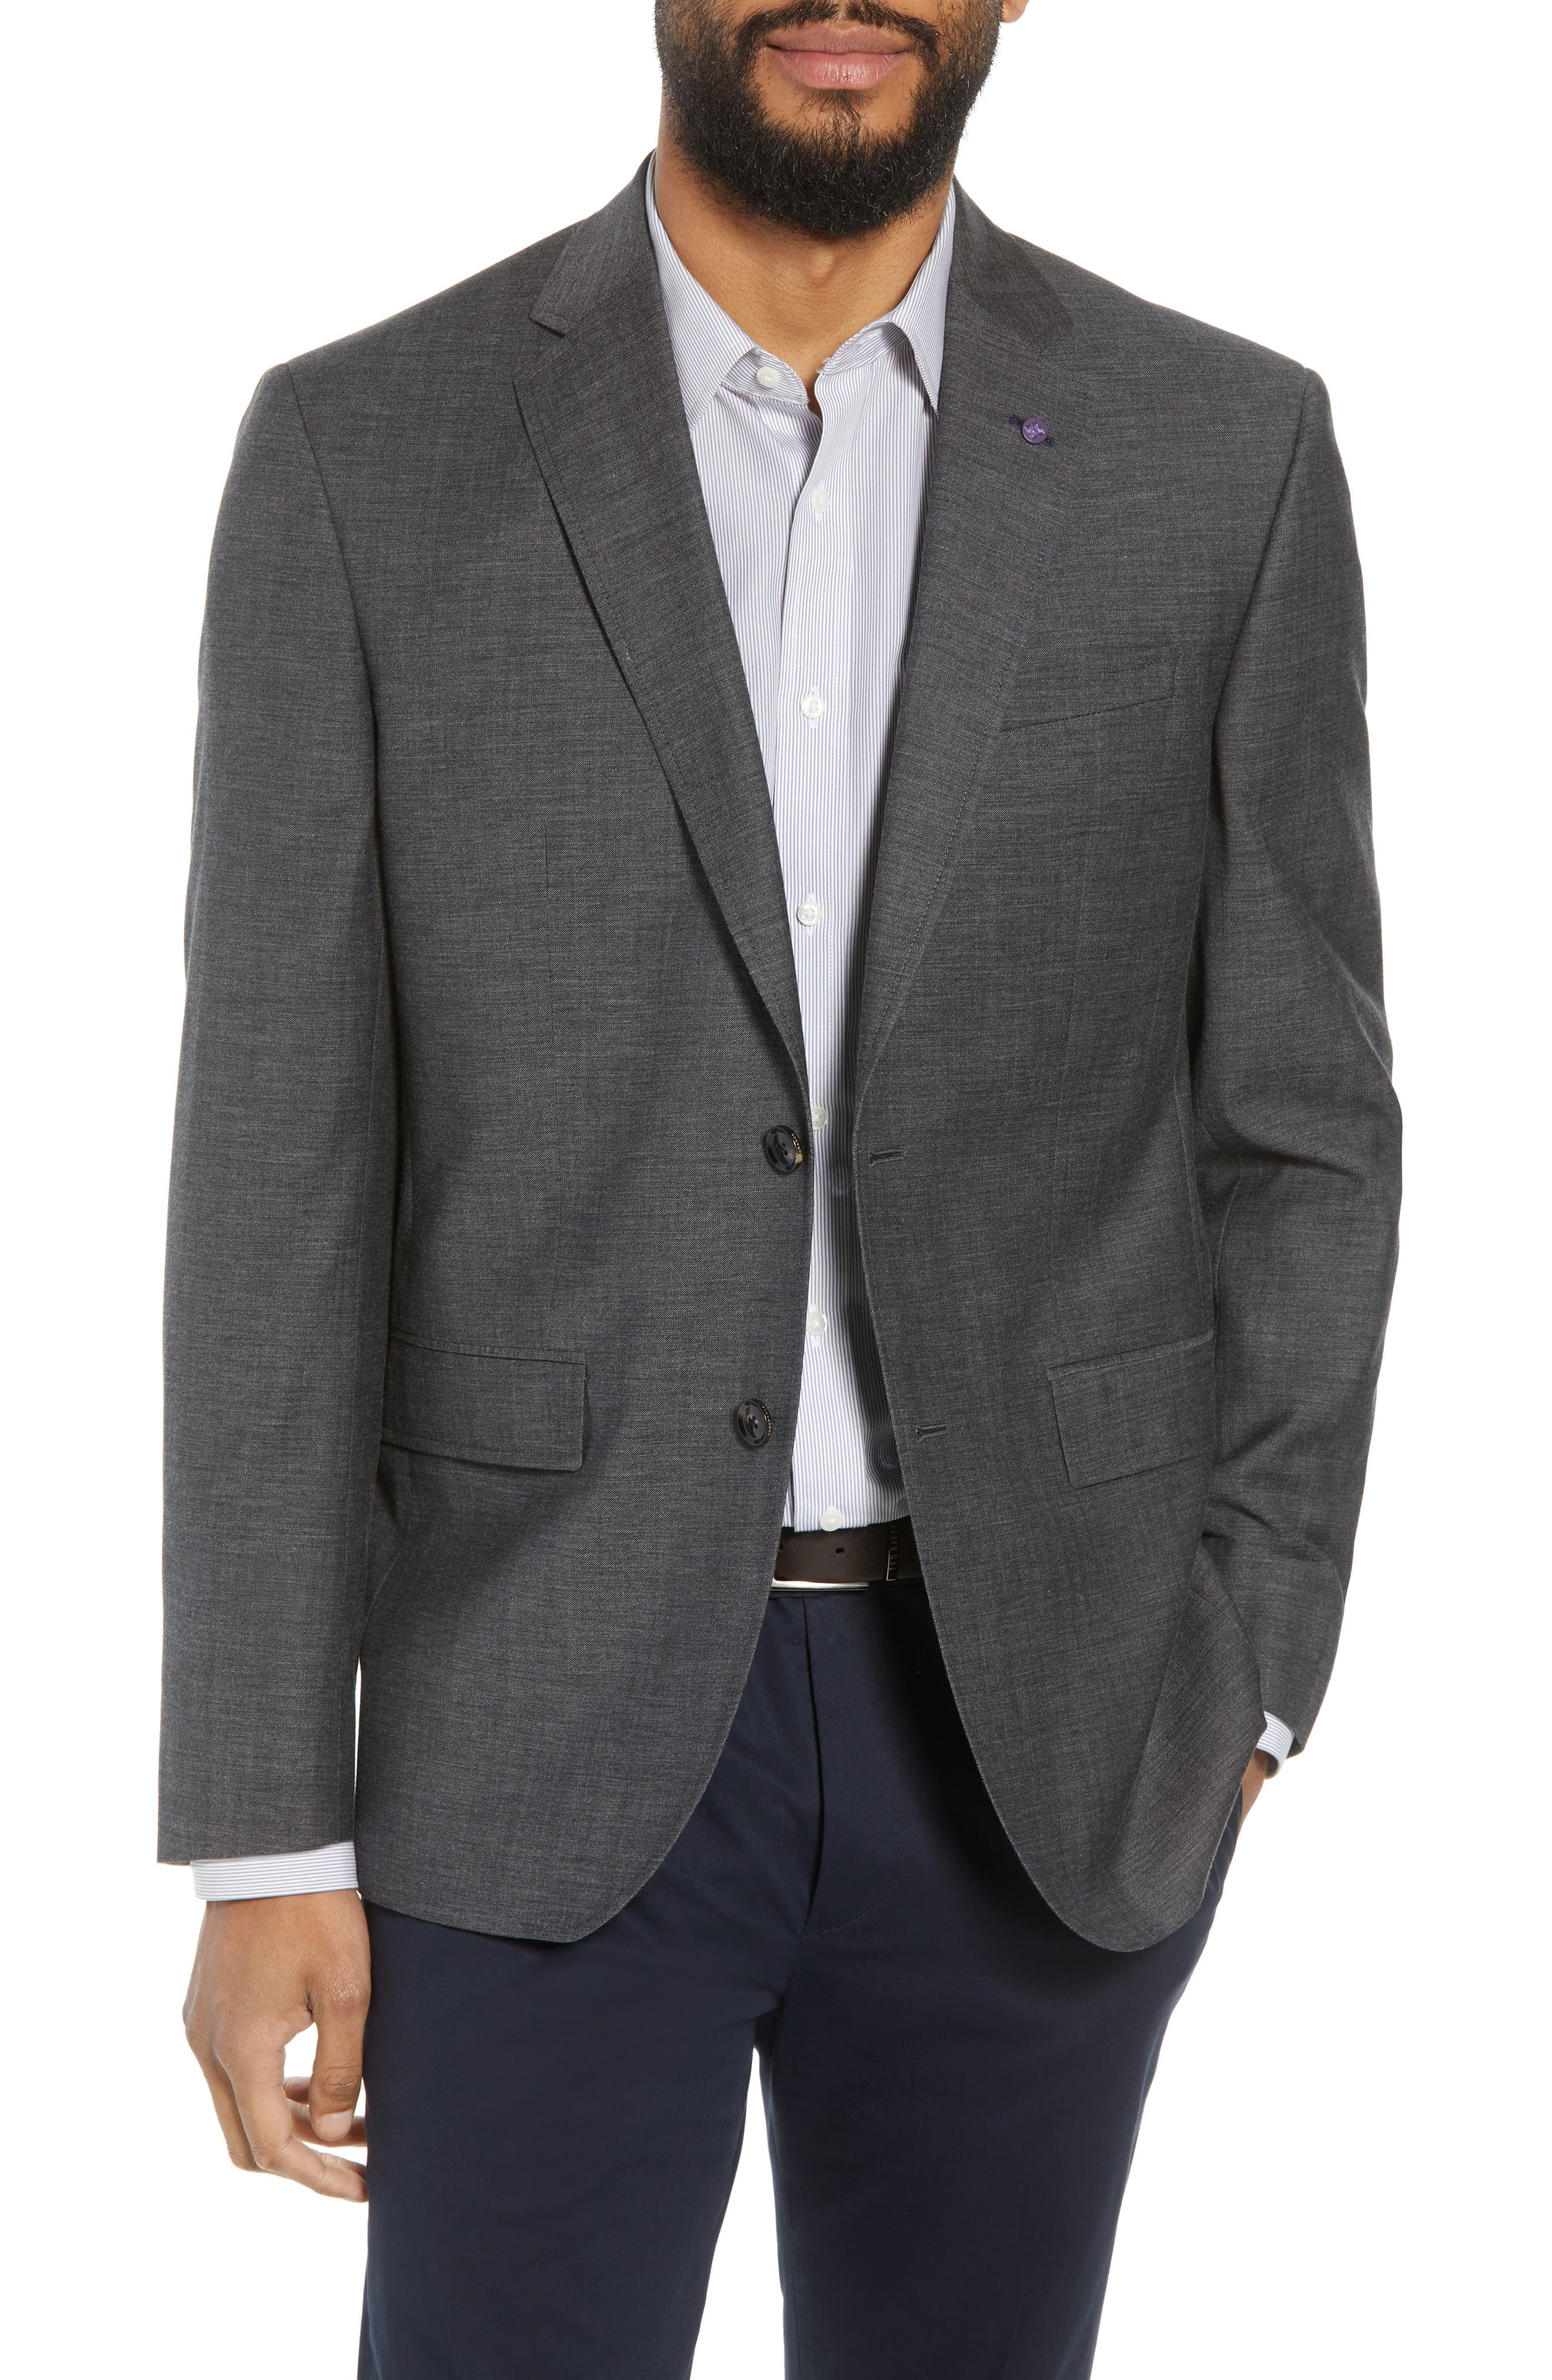 Jay Trim Fit Heathered Wool & Cotton Sport Coat,                         Main,                         color, Grey